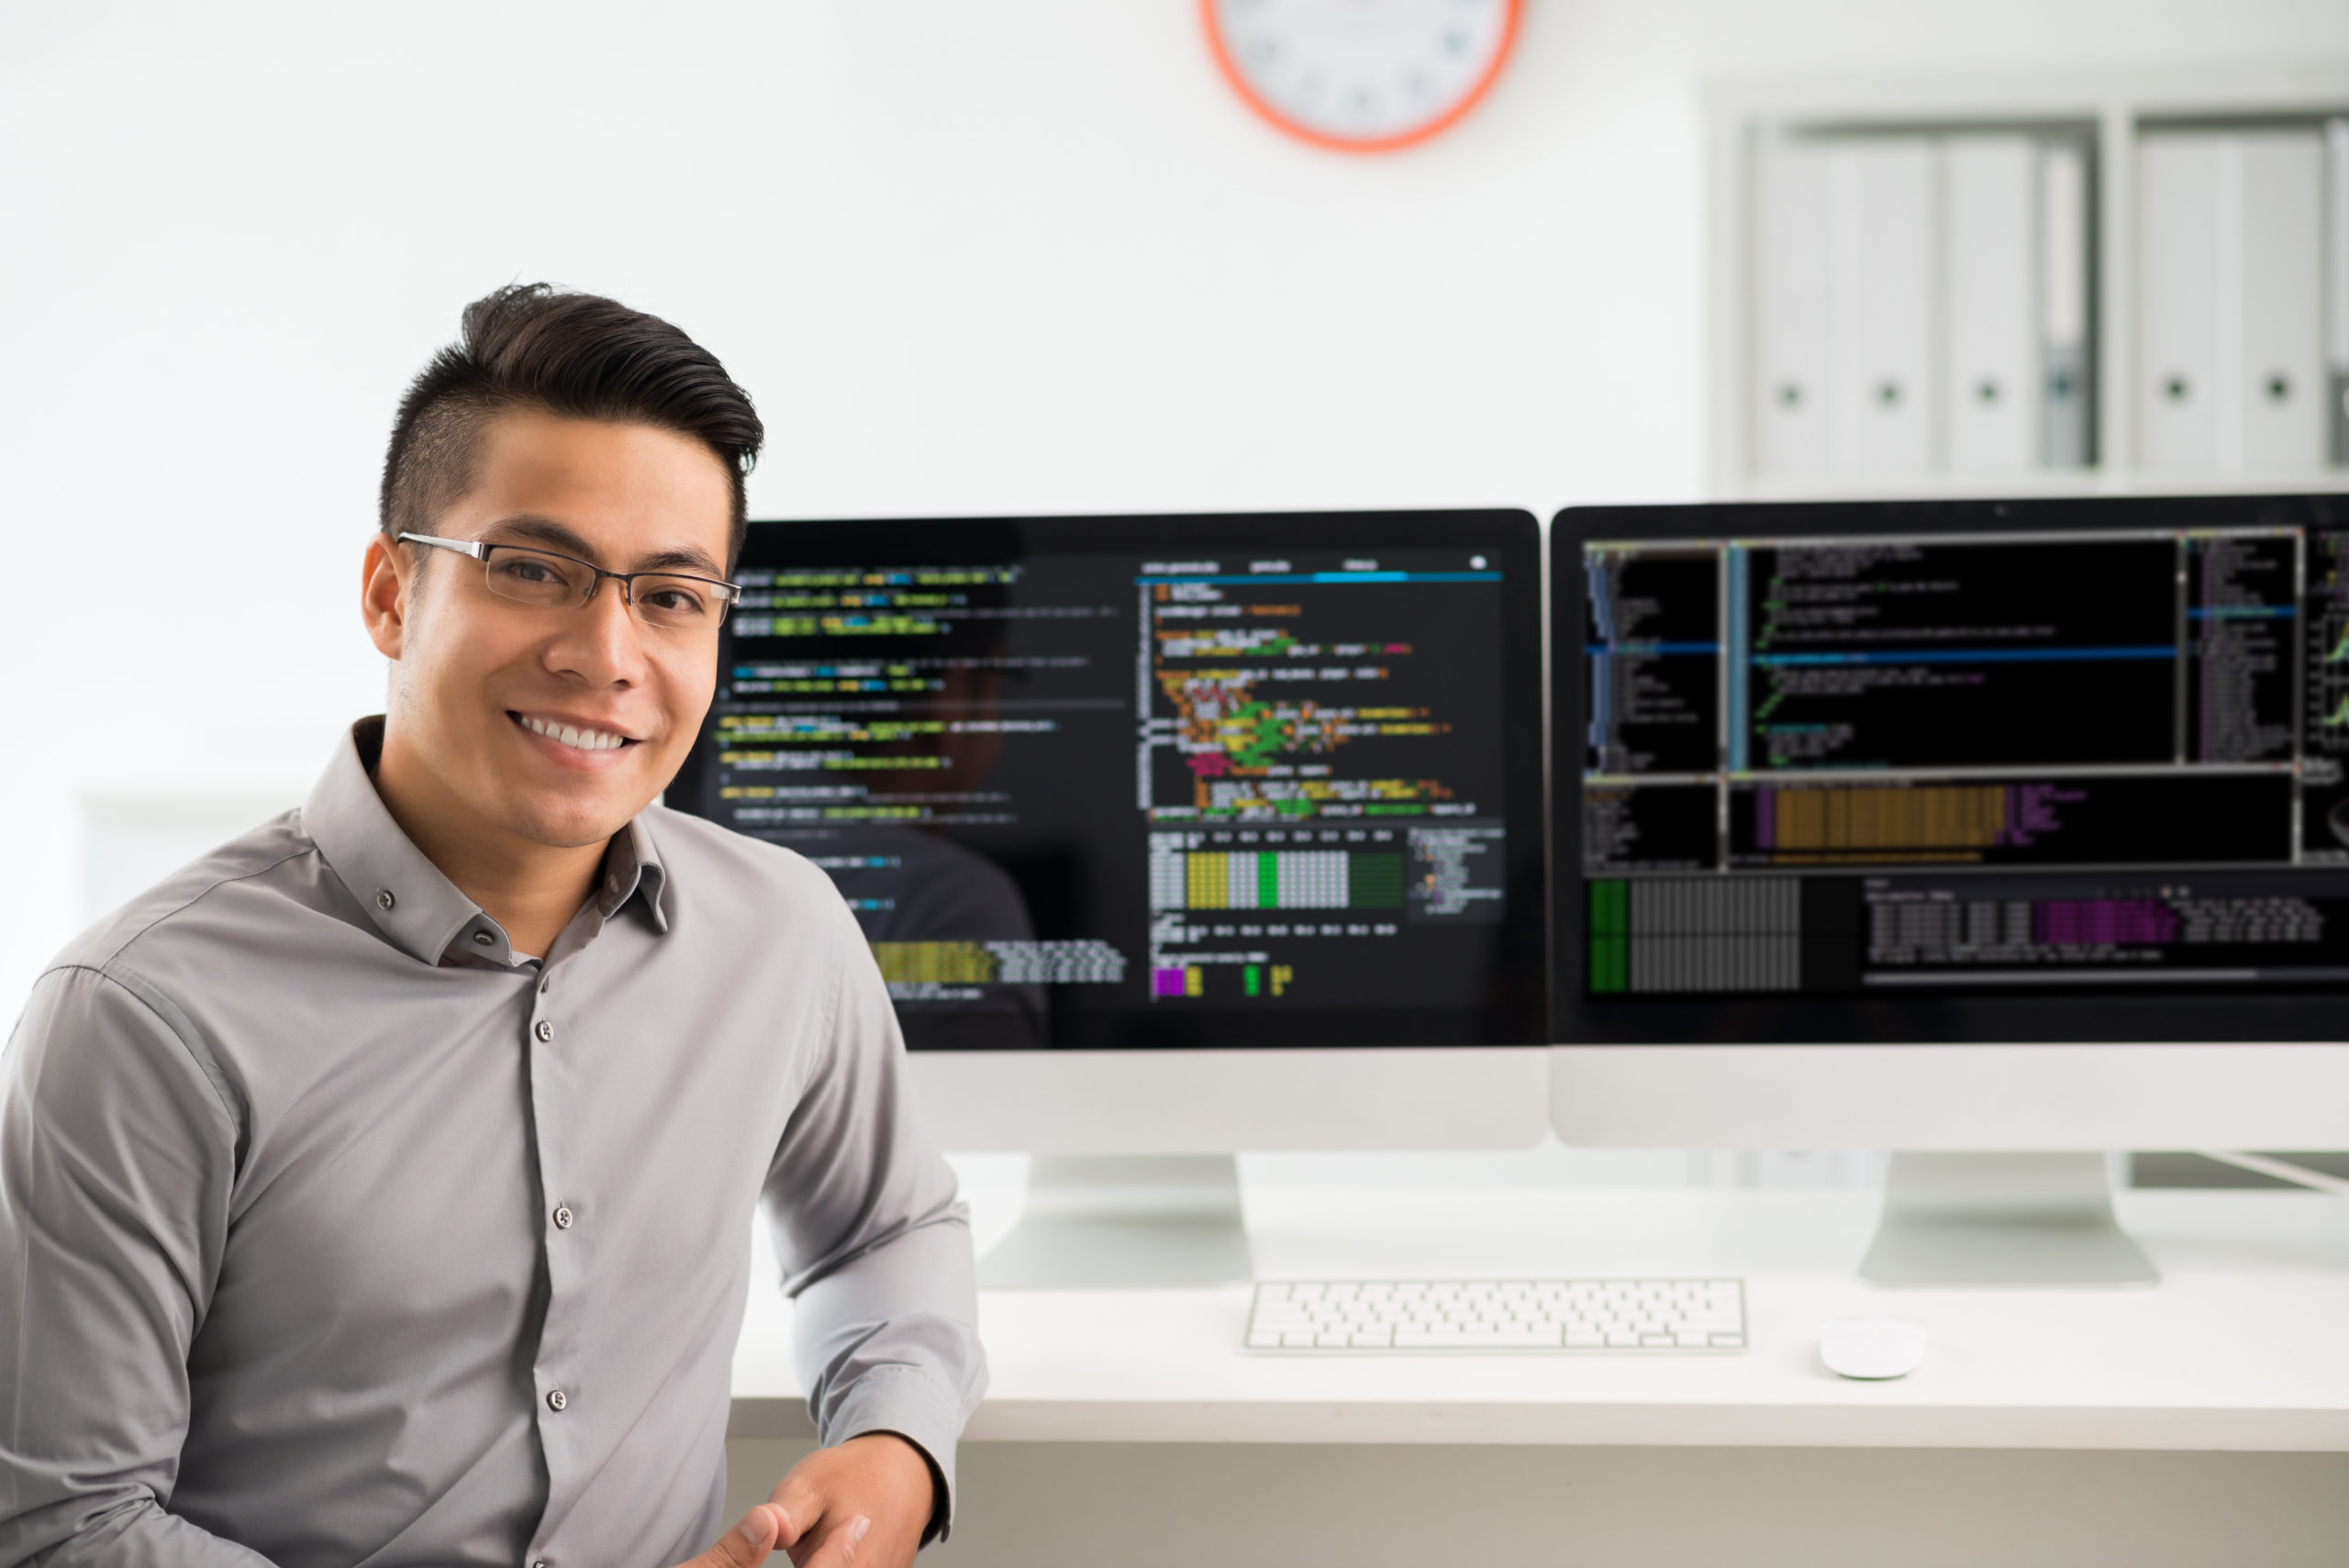 Young software engineer